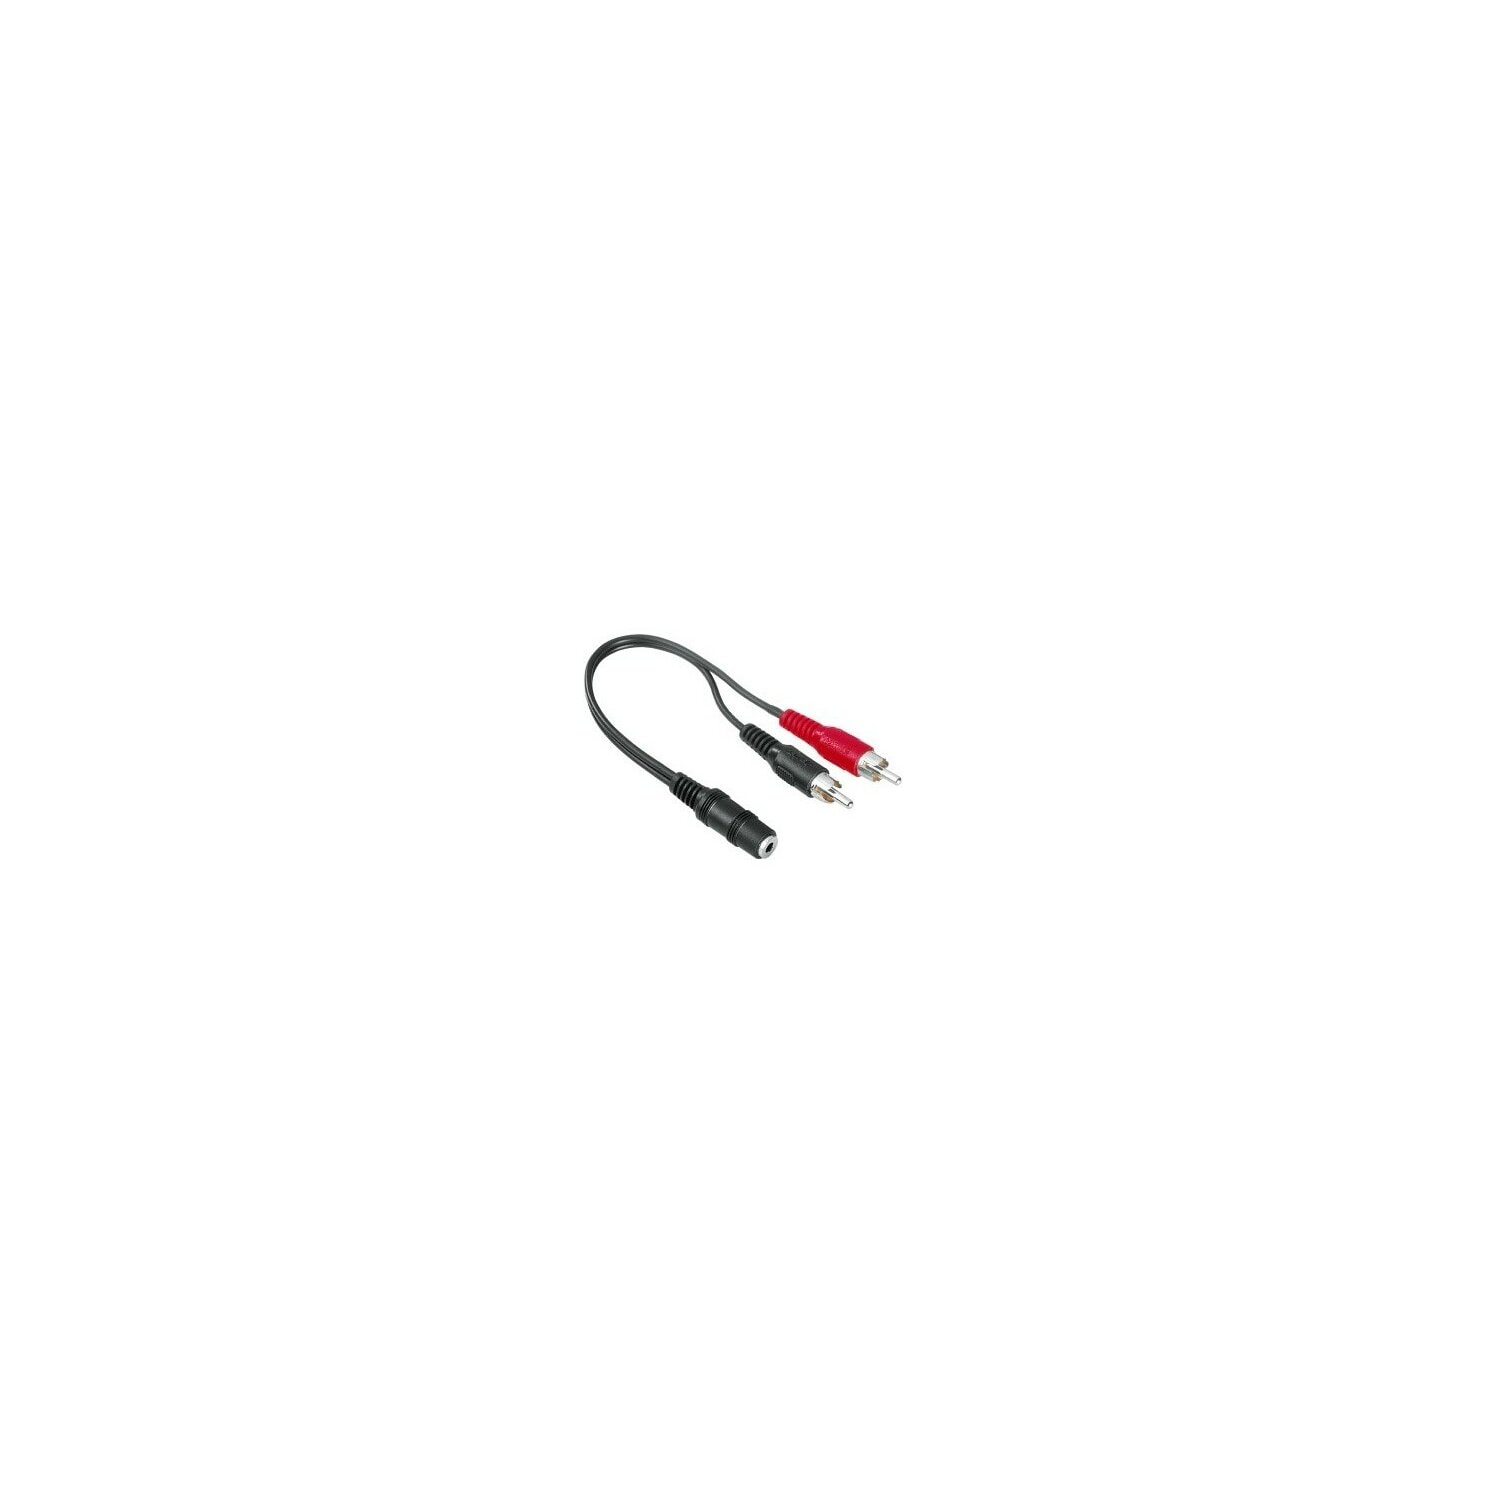 Kabel HAMA Kabel 2x CINCH WT - Jack 3.5 mm stereo GN